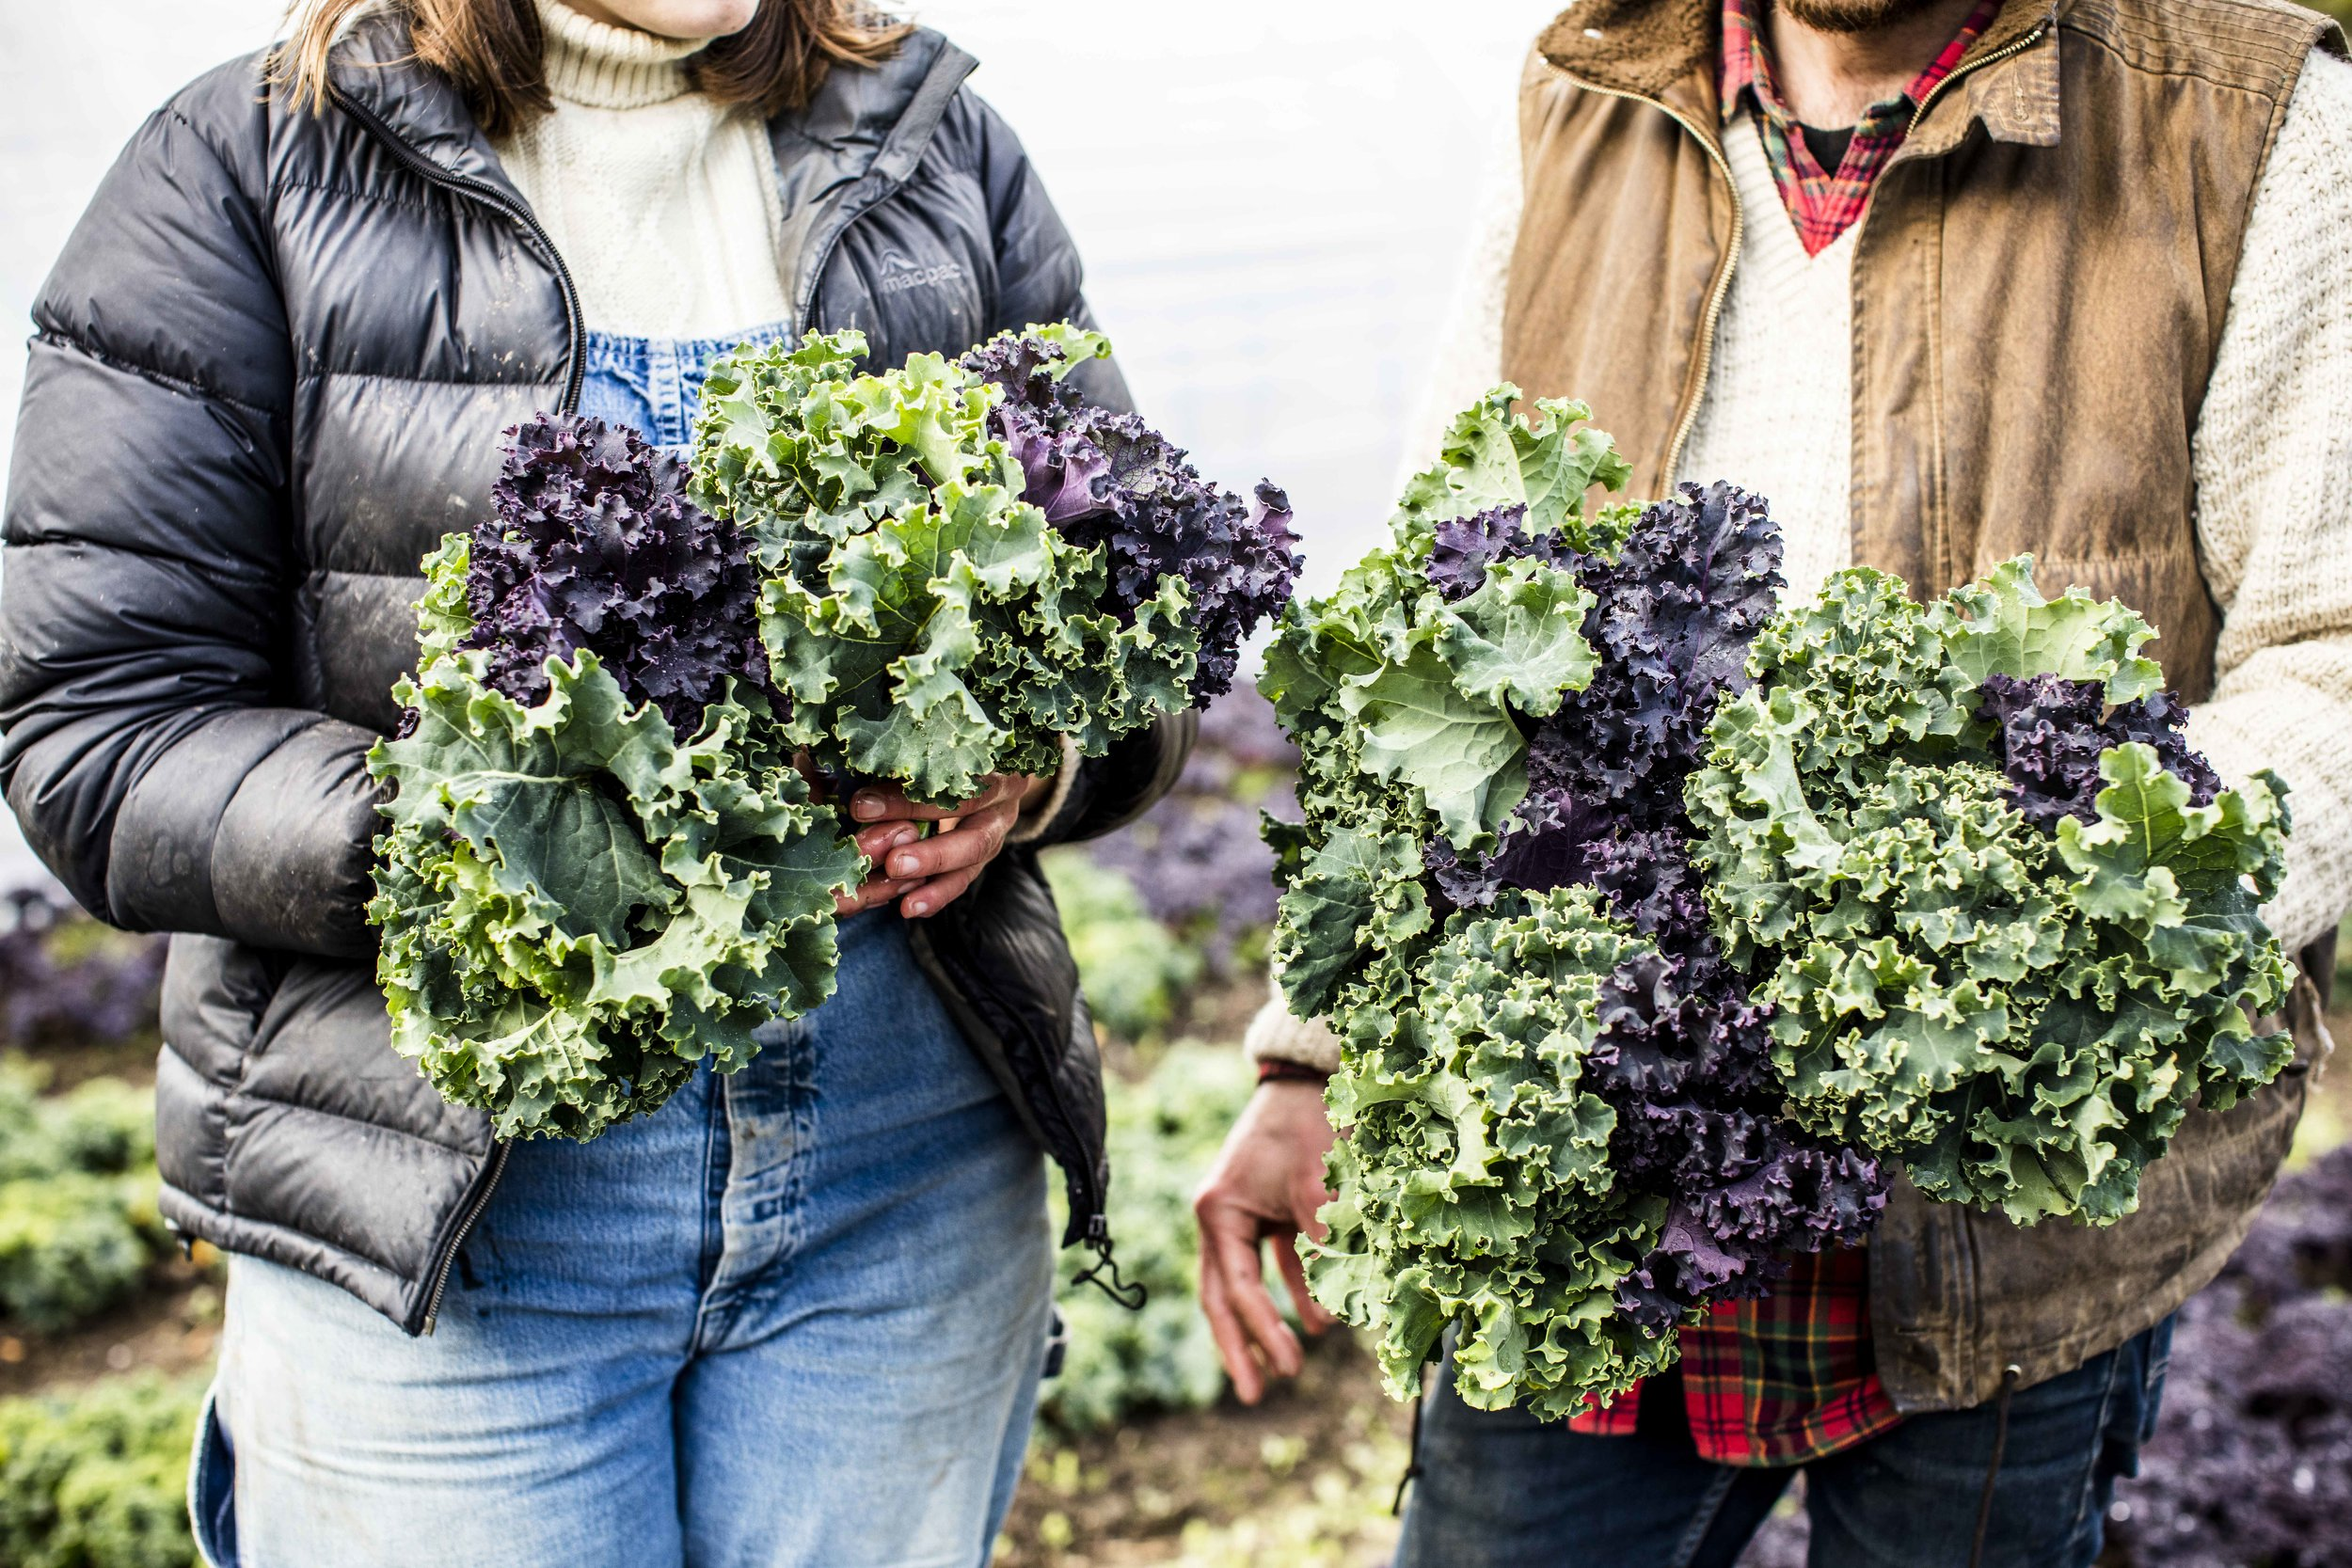 Green and purple curly winter kale